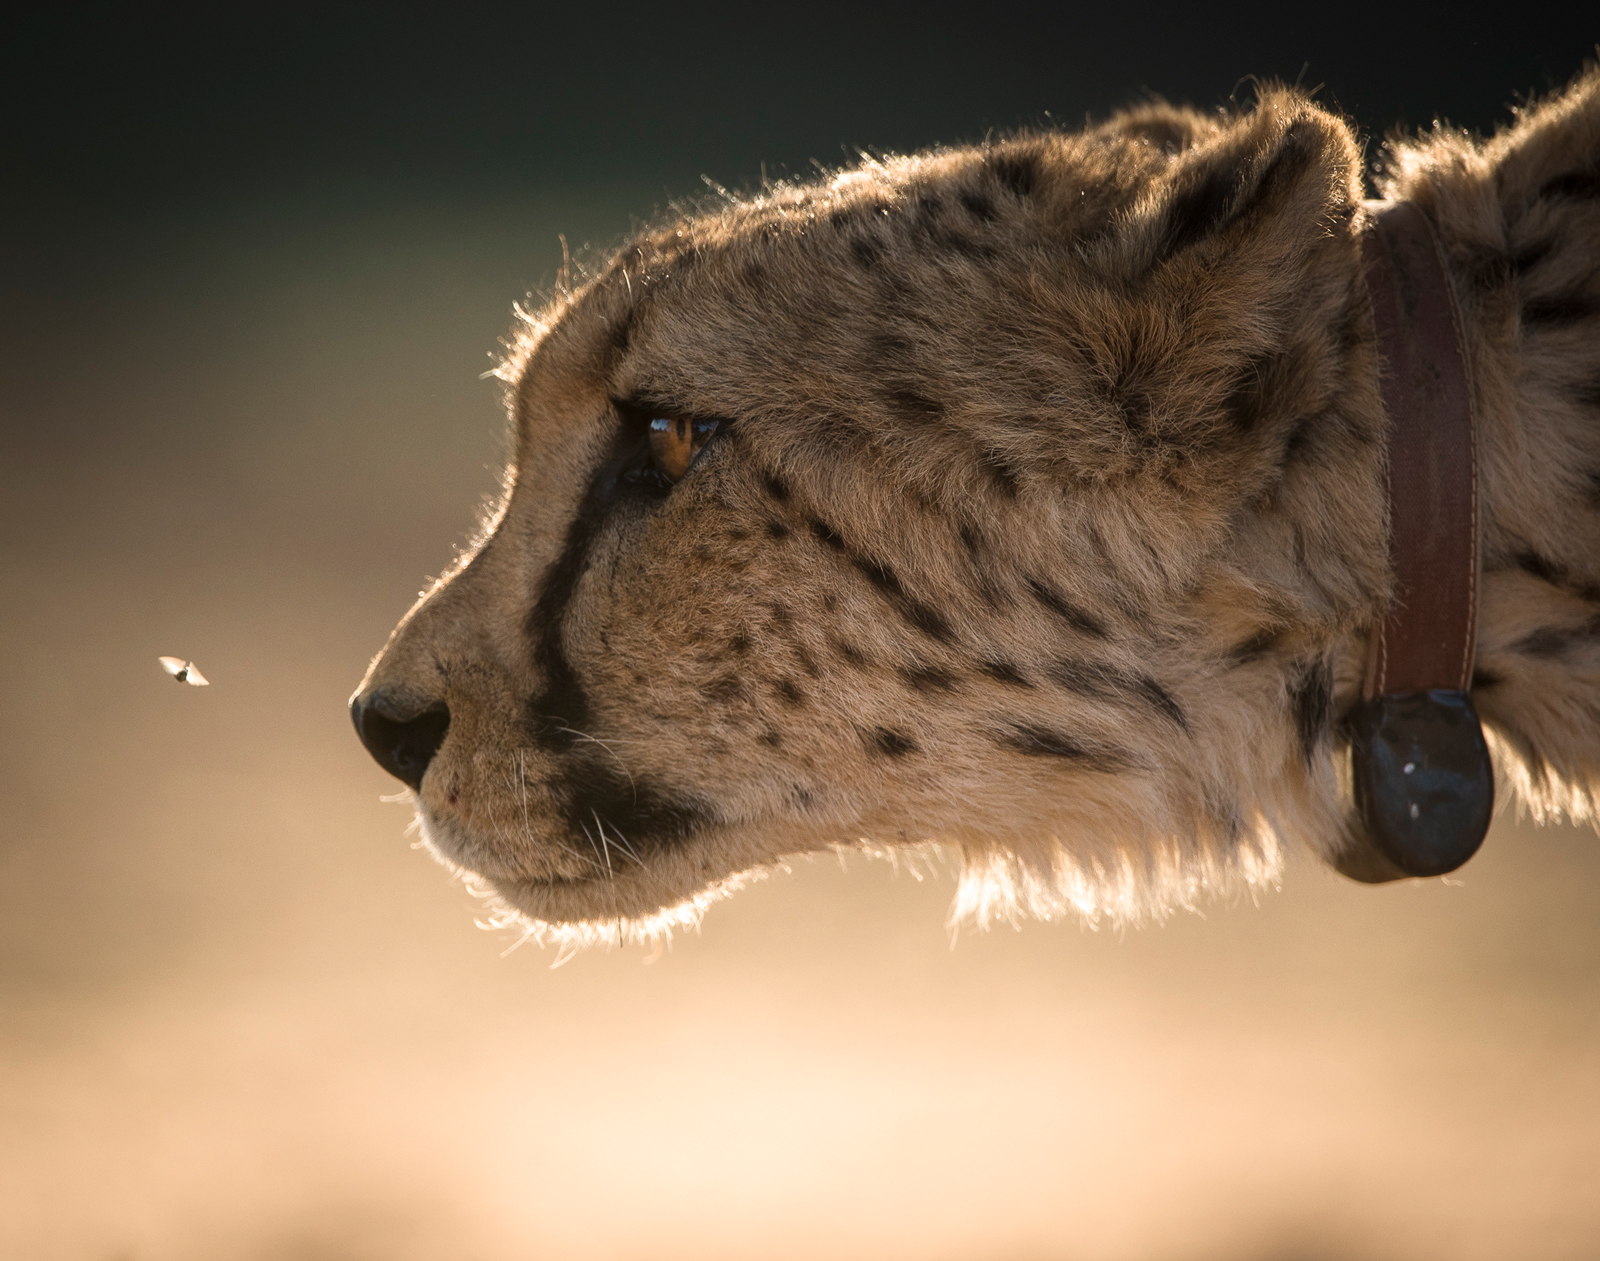 """A collared cheetah at <a href=""""http://www.okonjima.com"""" target=""""_blank"""" class=""""track"""">Okonjima, home of The AfriCat Foundation</a> ©<a href=""""https://www.facebook.com/Anja-Denker-Wildlife-Photography-and-Visual-Art-246355102104717/"""" target=""""_blank"""">Anja Denker</a>"""